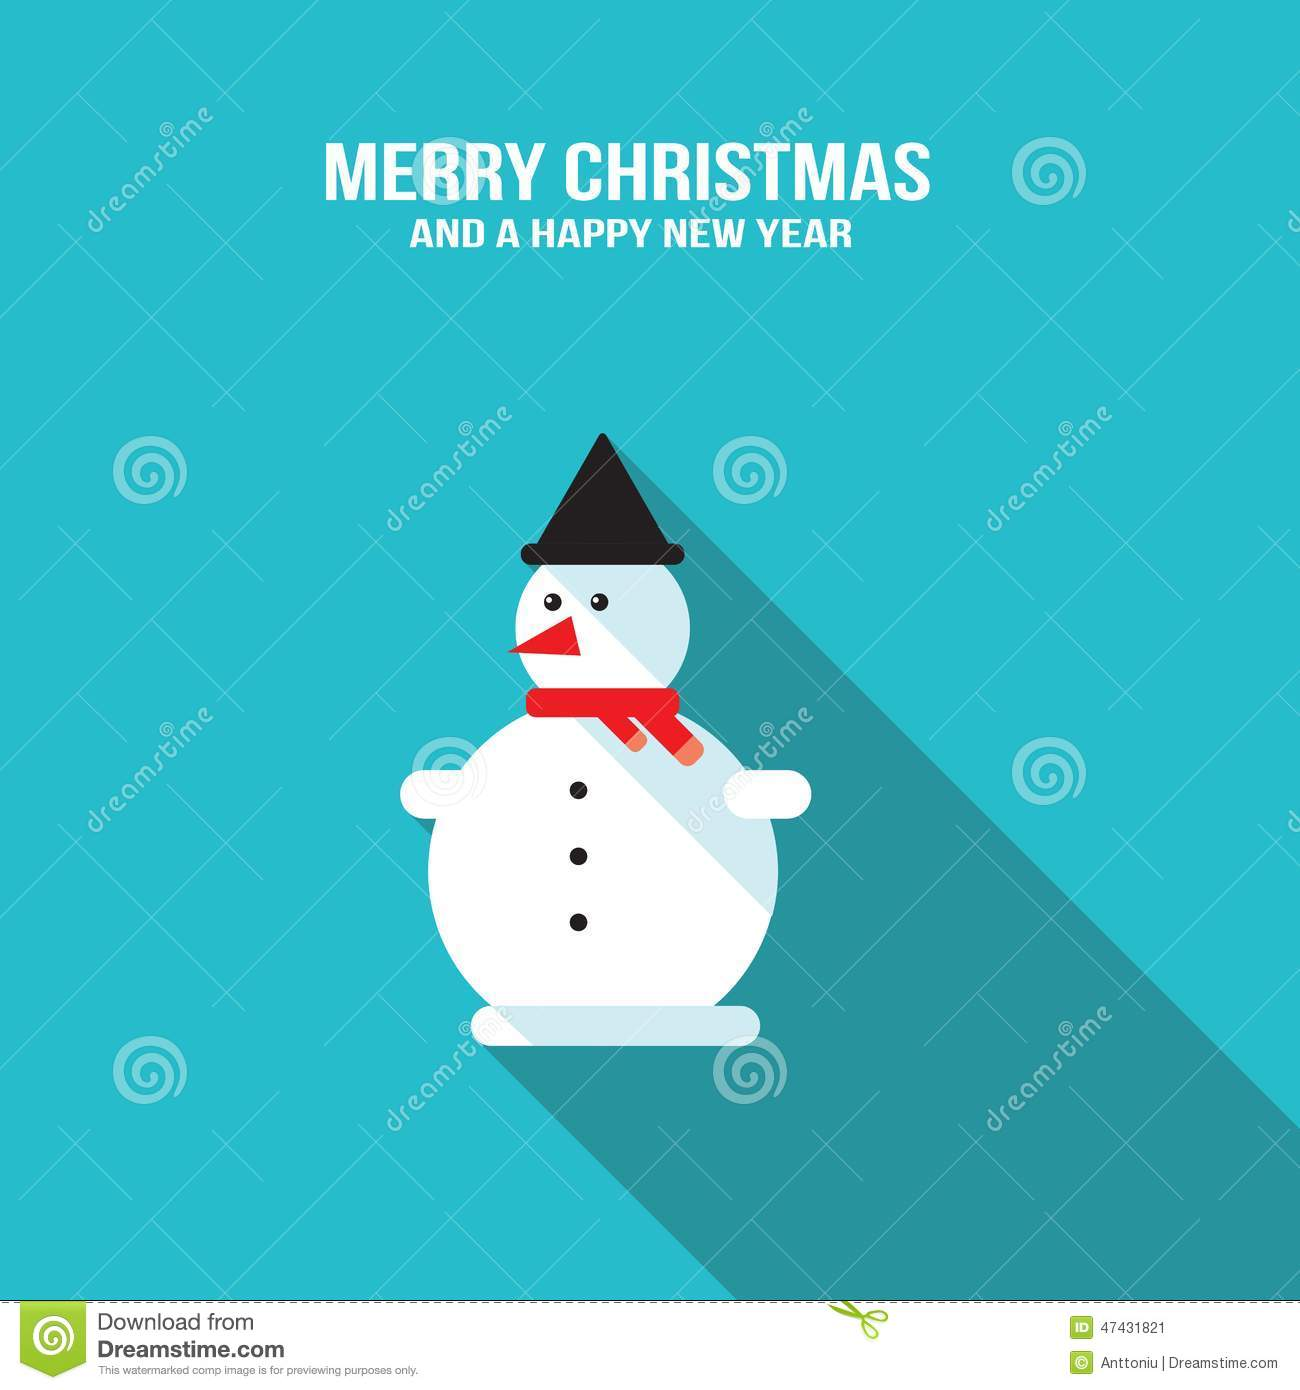 Cute snowman merry christmas and happy new year greeting card cute snowman merry christmas and happy new year greeting card brochure funny kristyandbryce Image collections